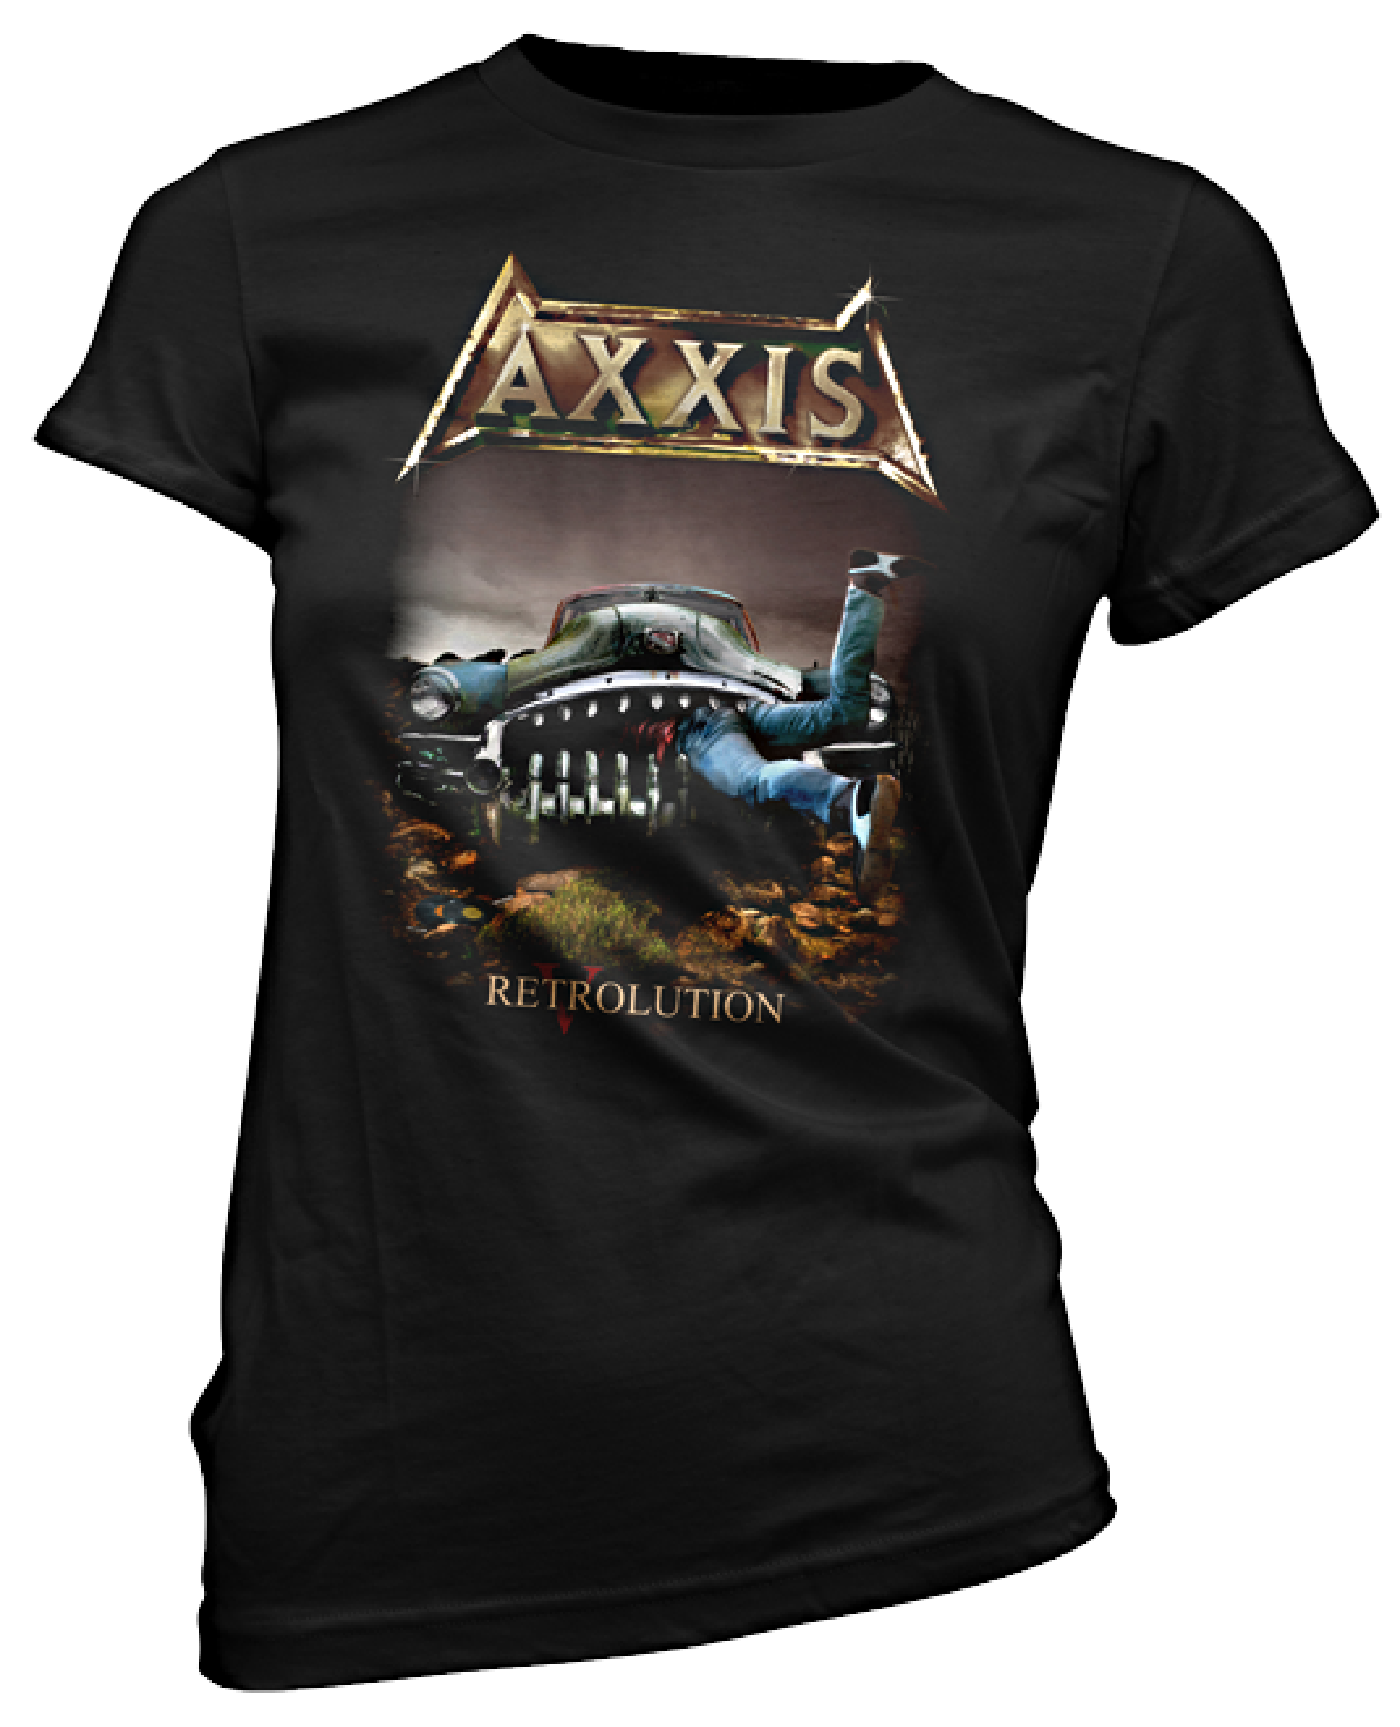 AXXIS Girlie Retrolution